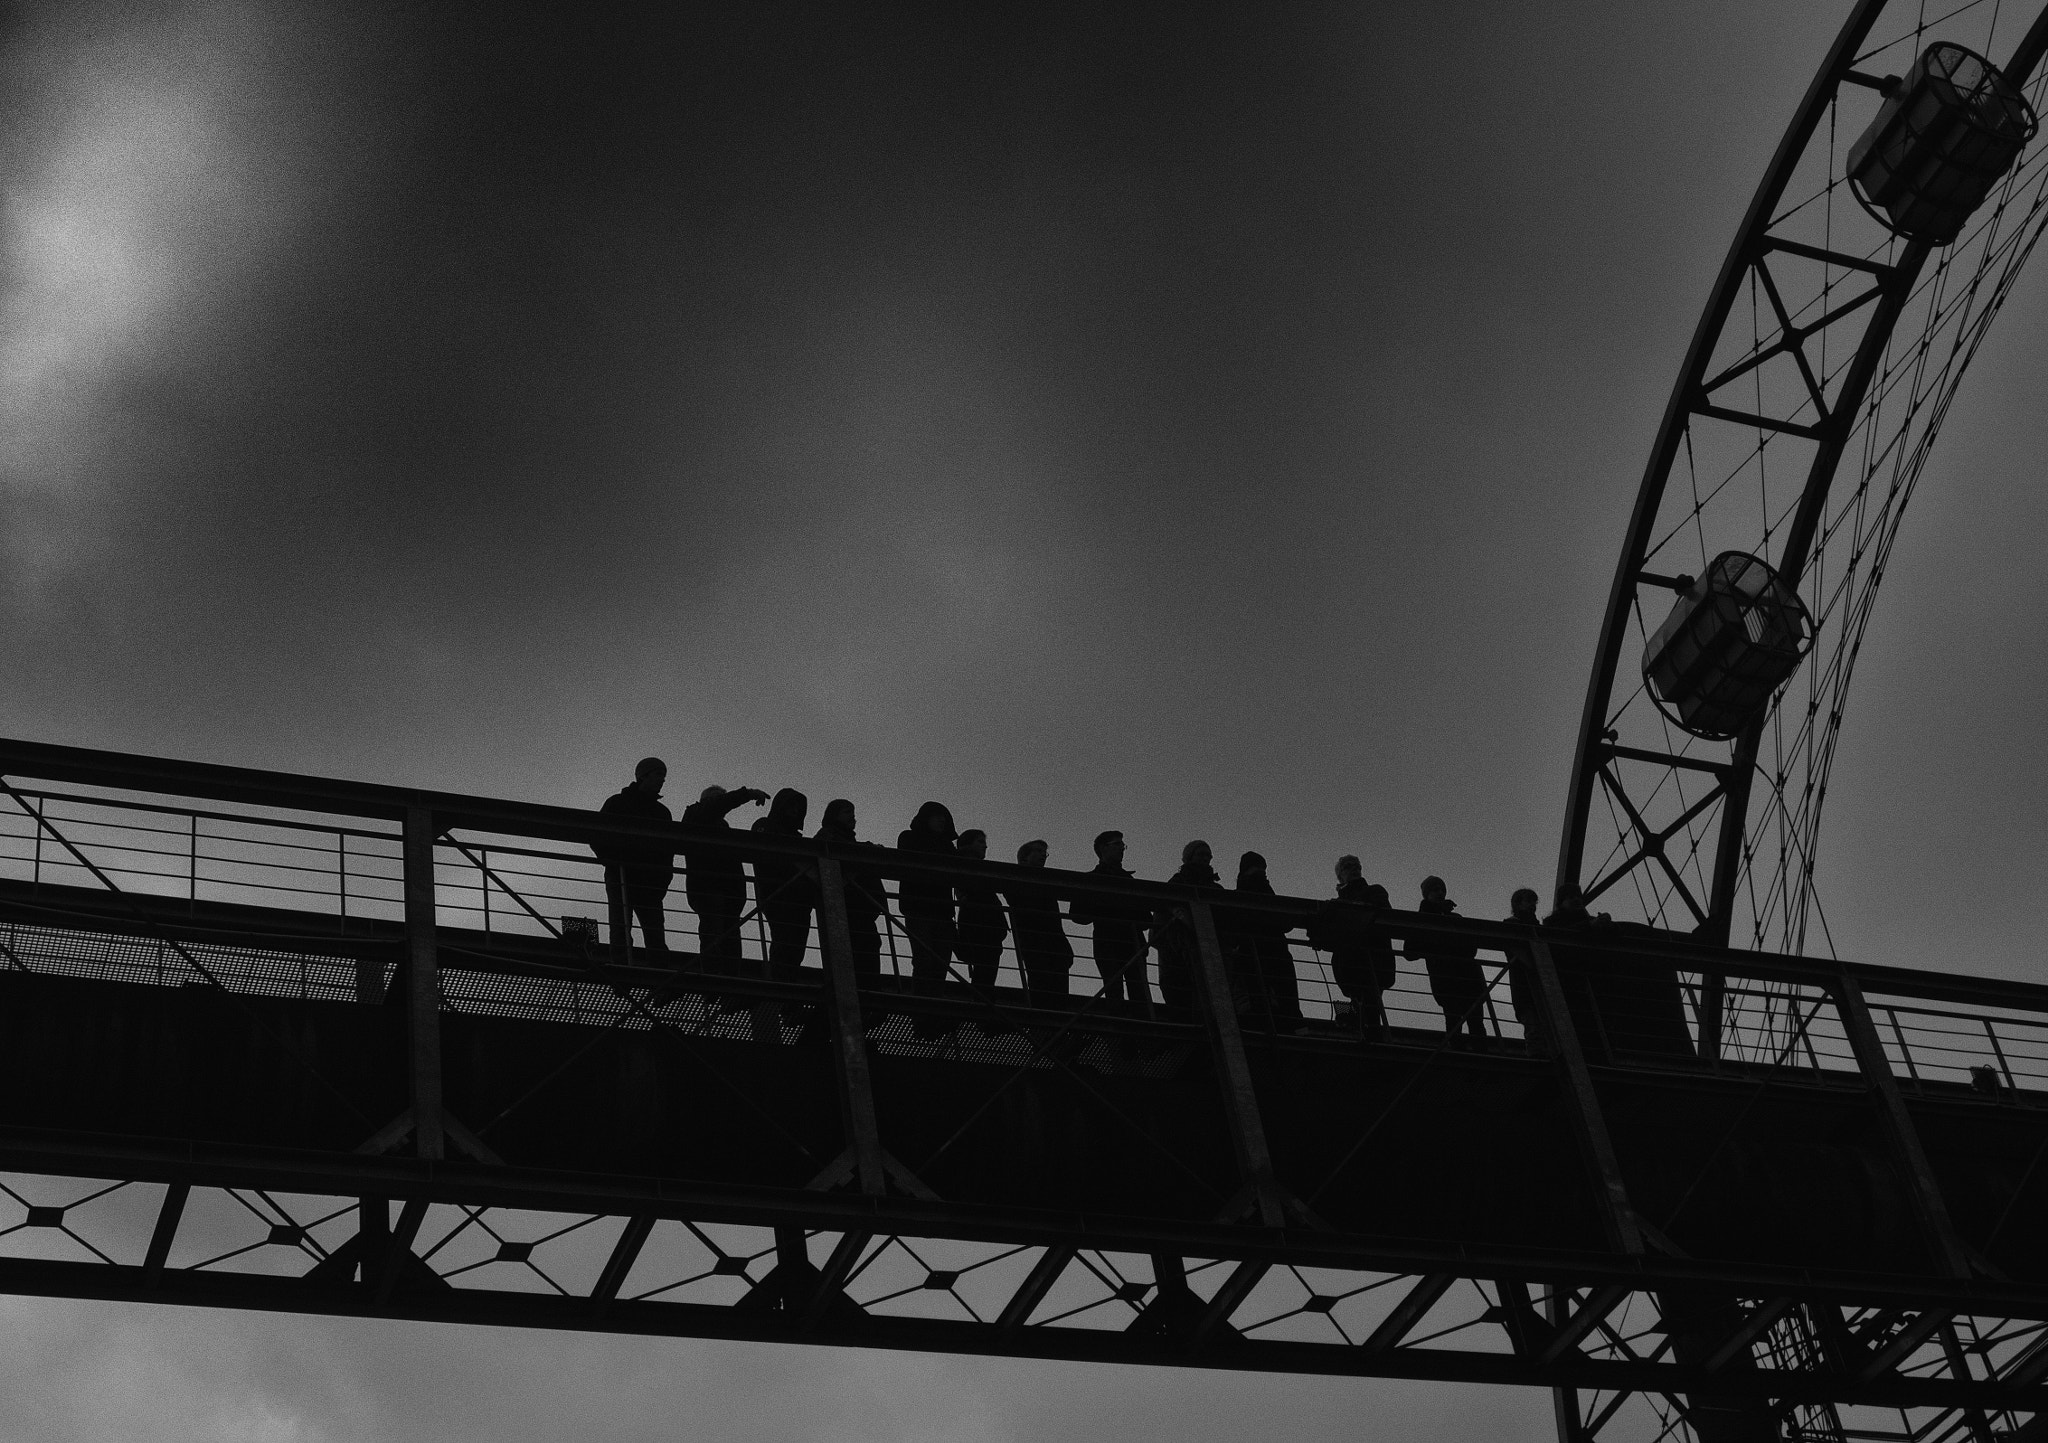 Photograph on the top by Georgie Pauwels on 500px